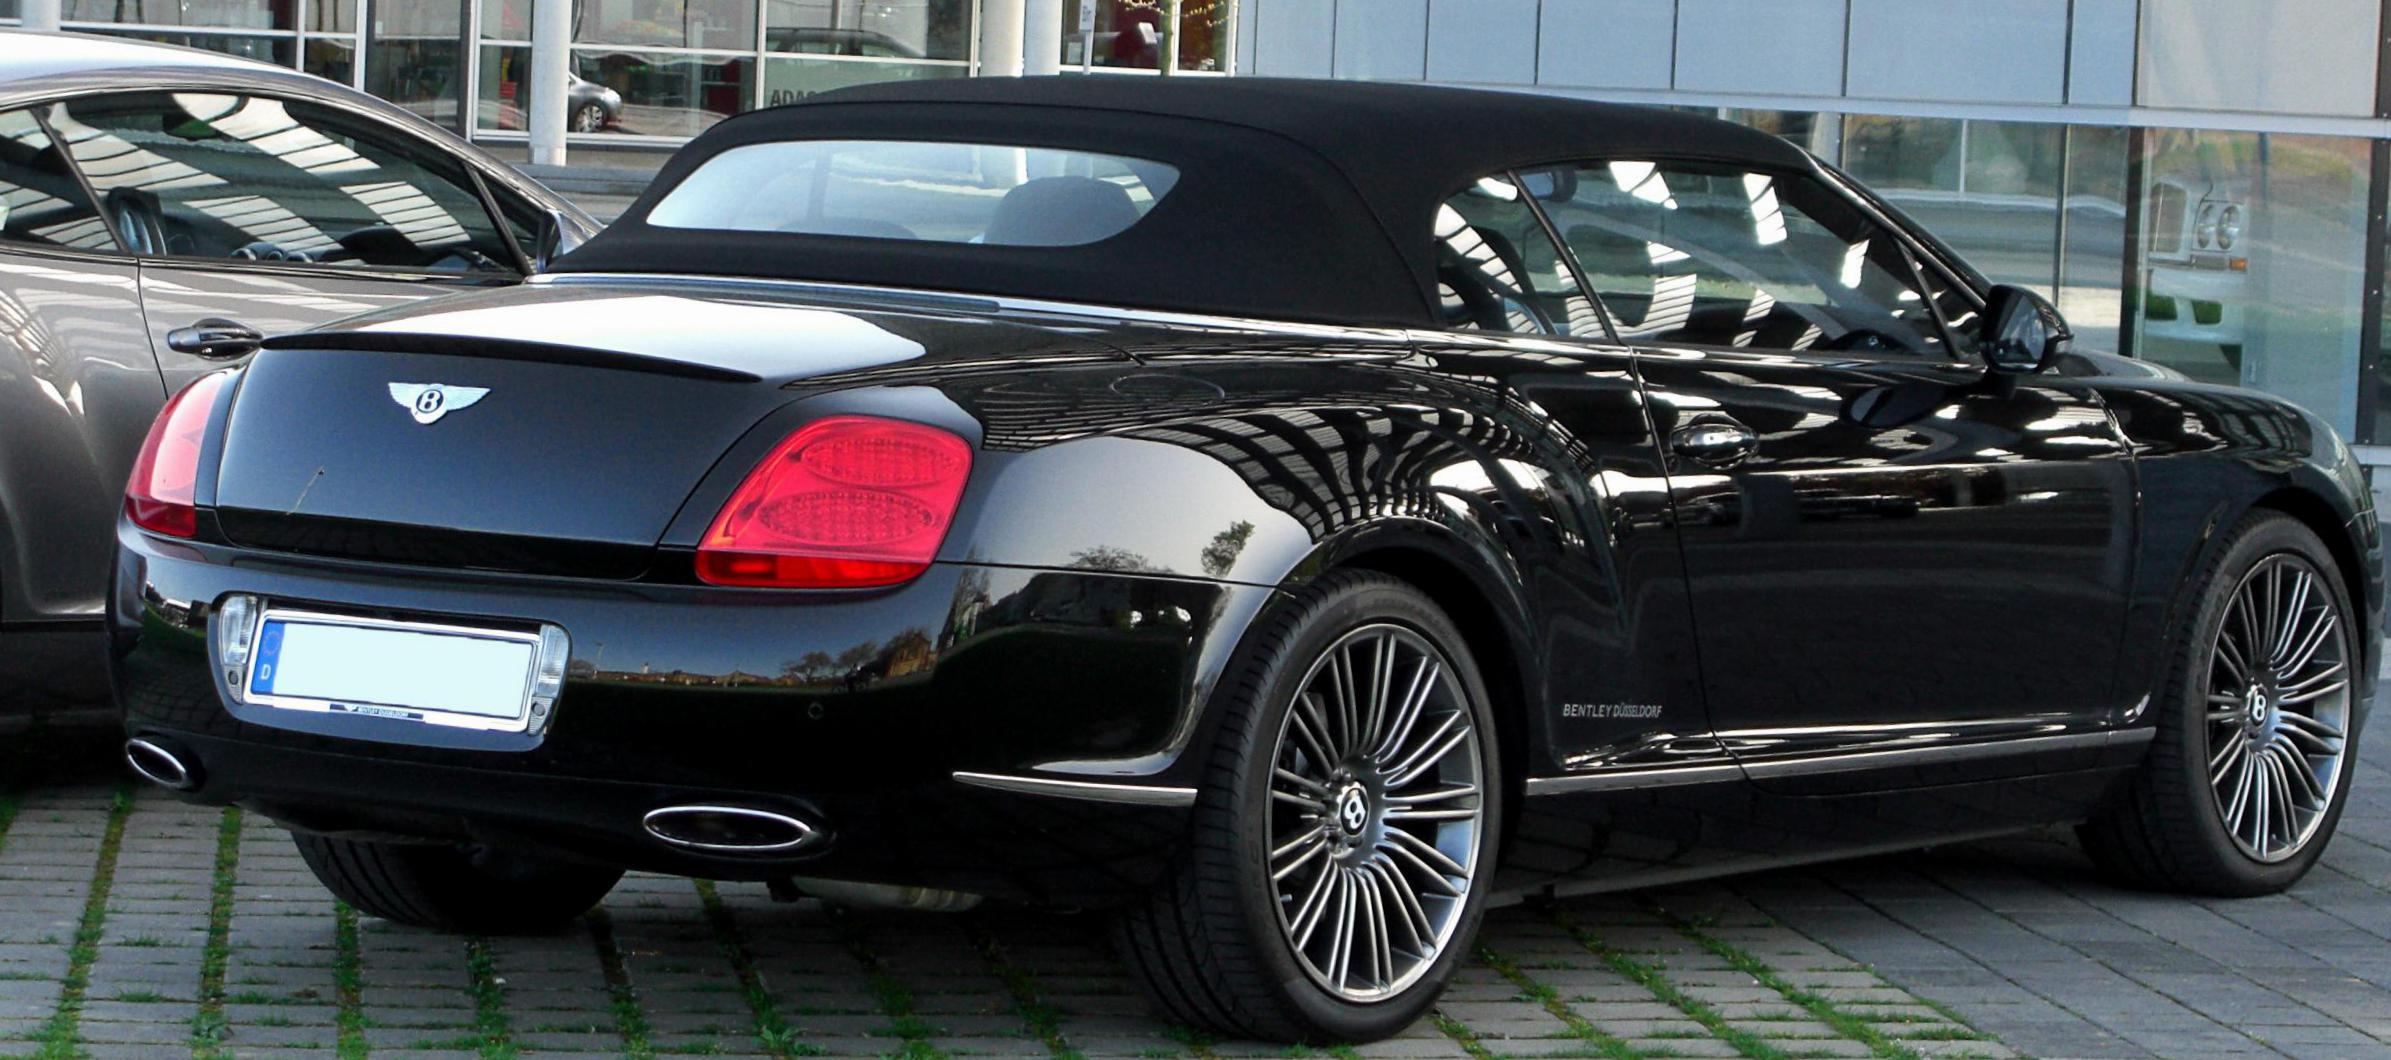 Continental GTC Bentley Specification 2012